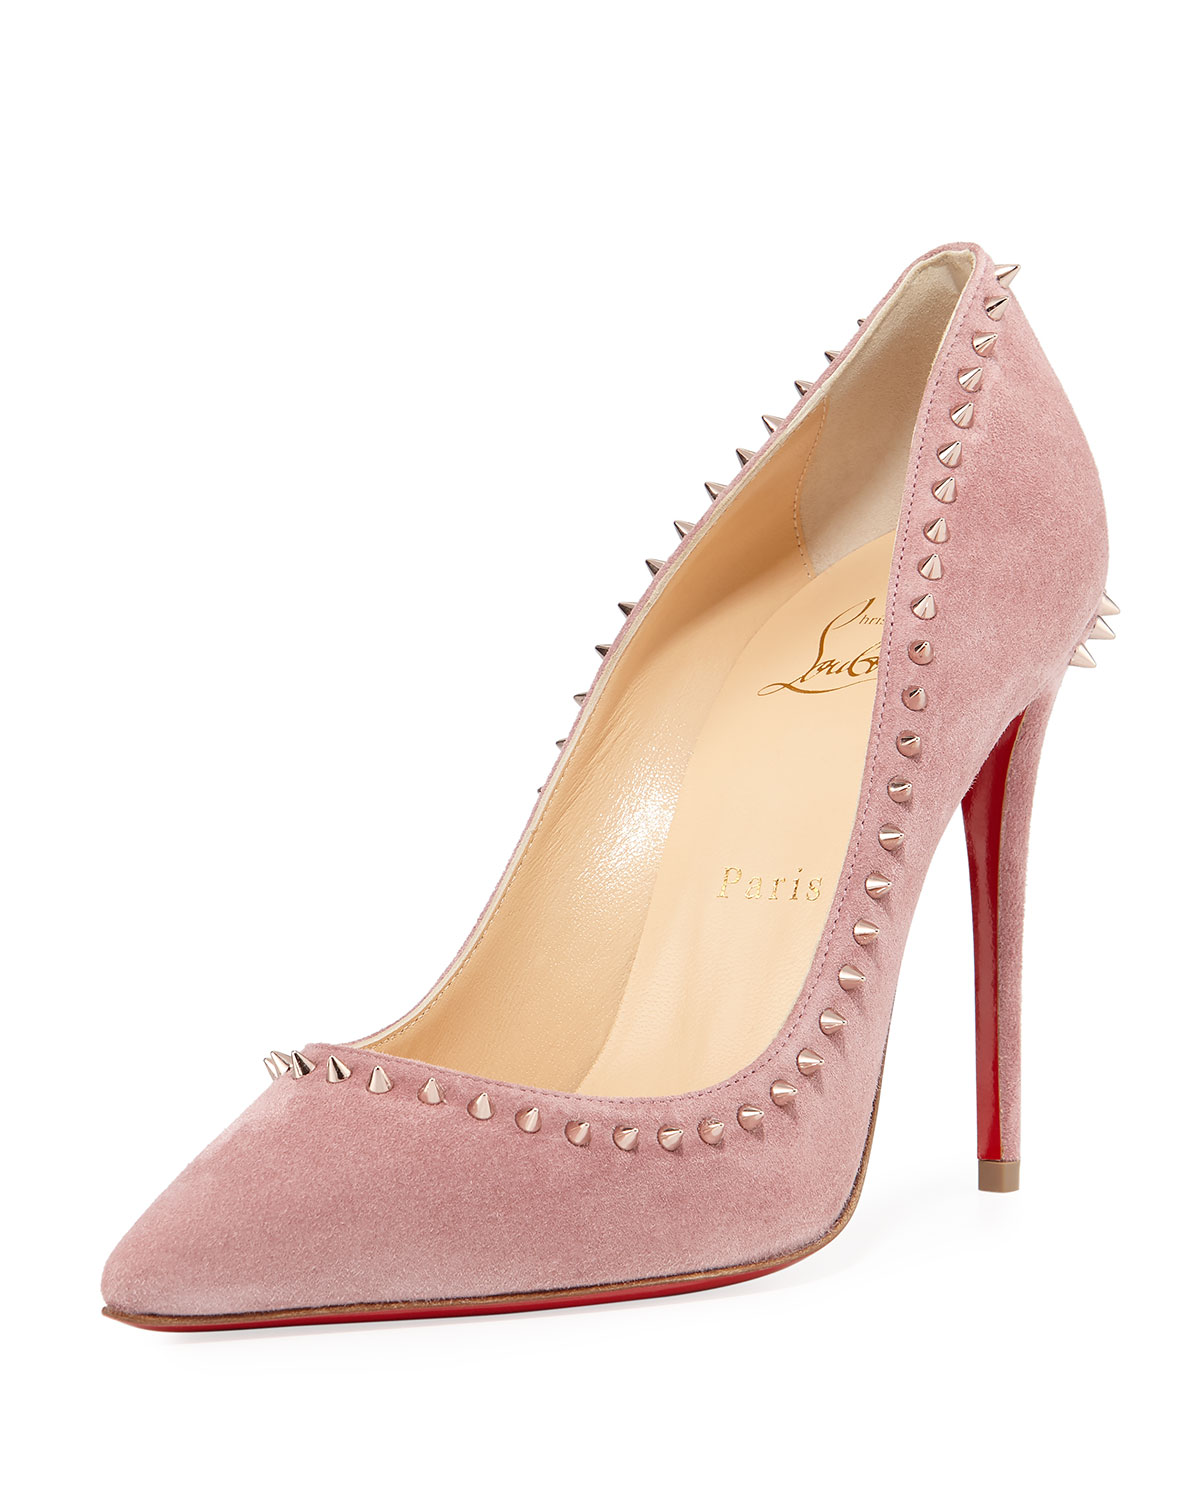 Women's Designer Heels & Pumps at Neiman Marcus